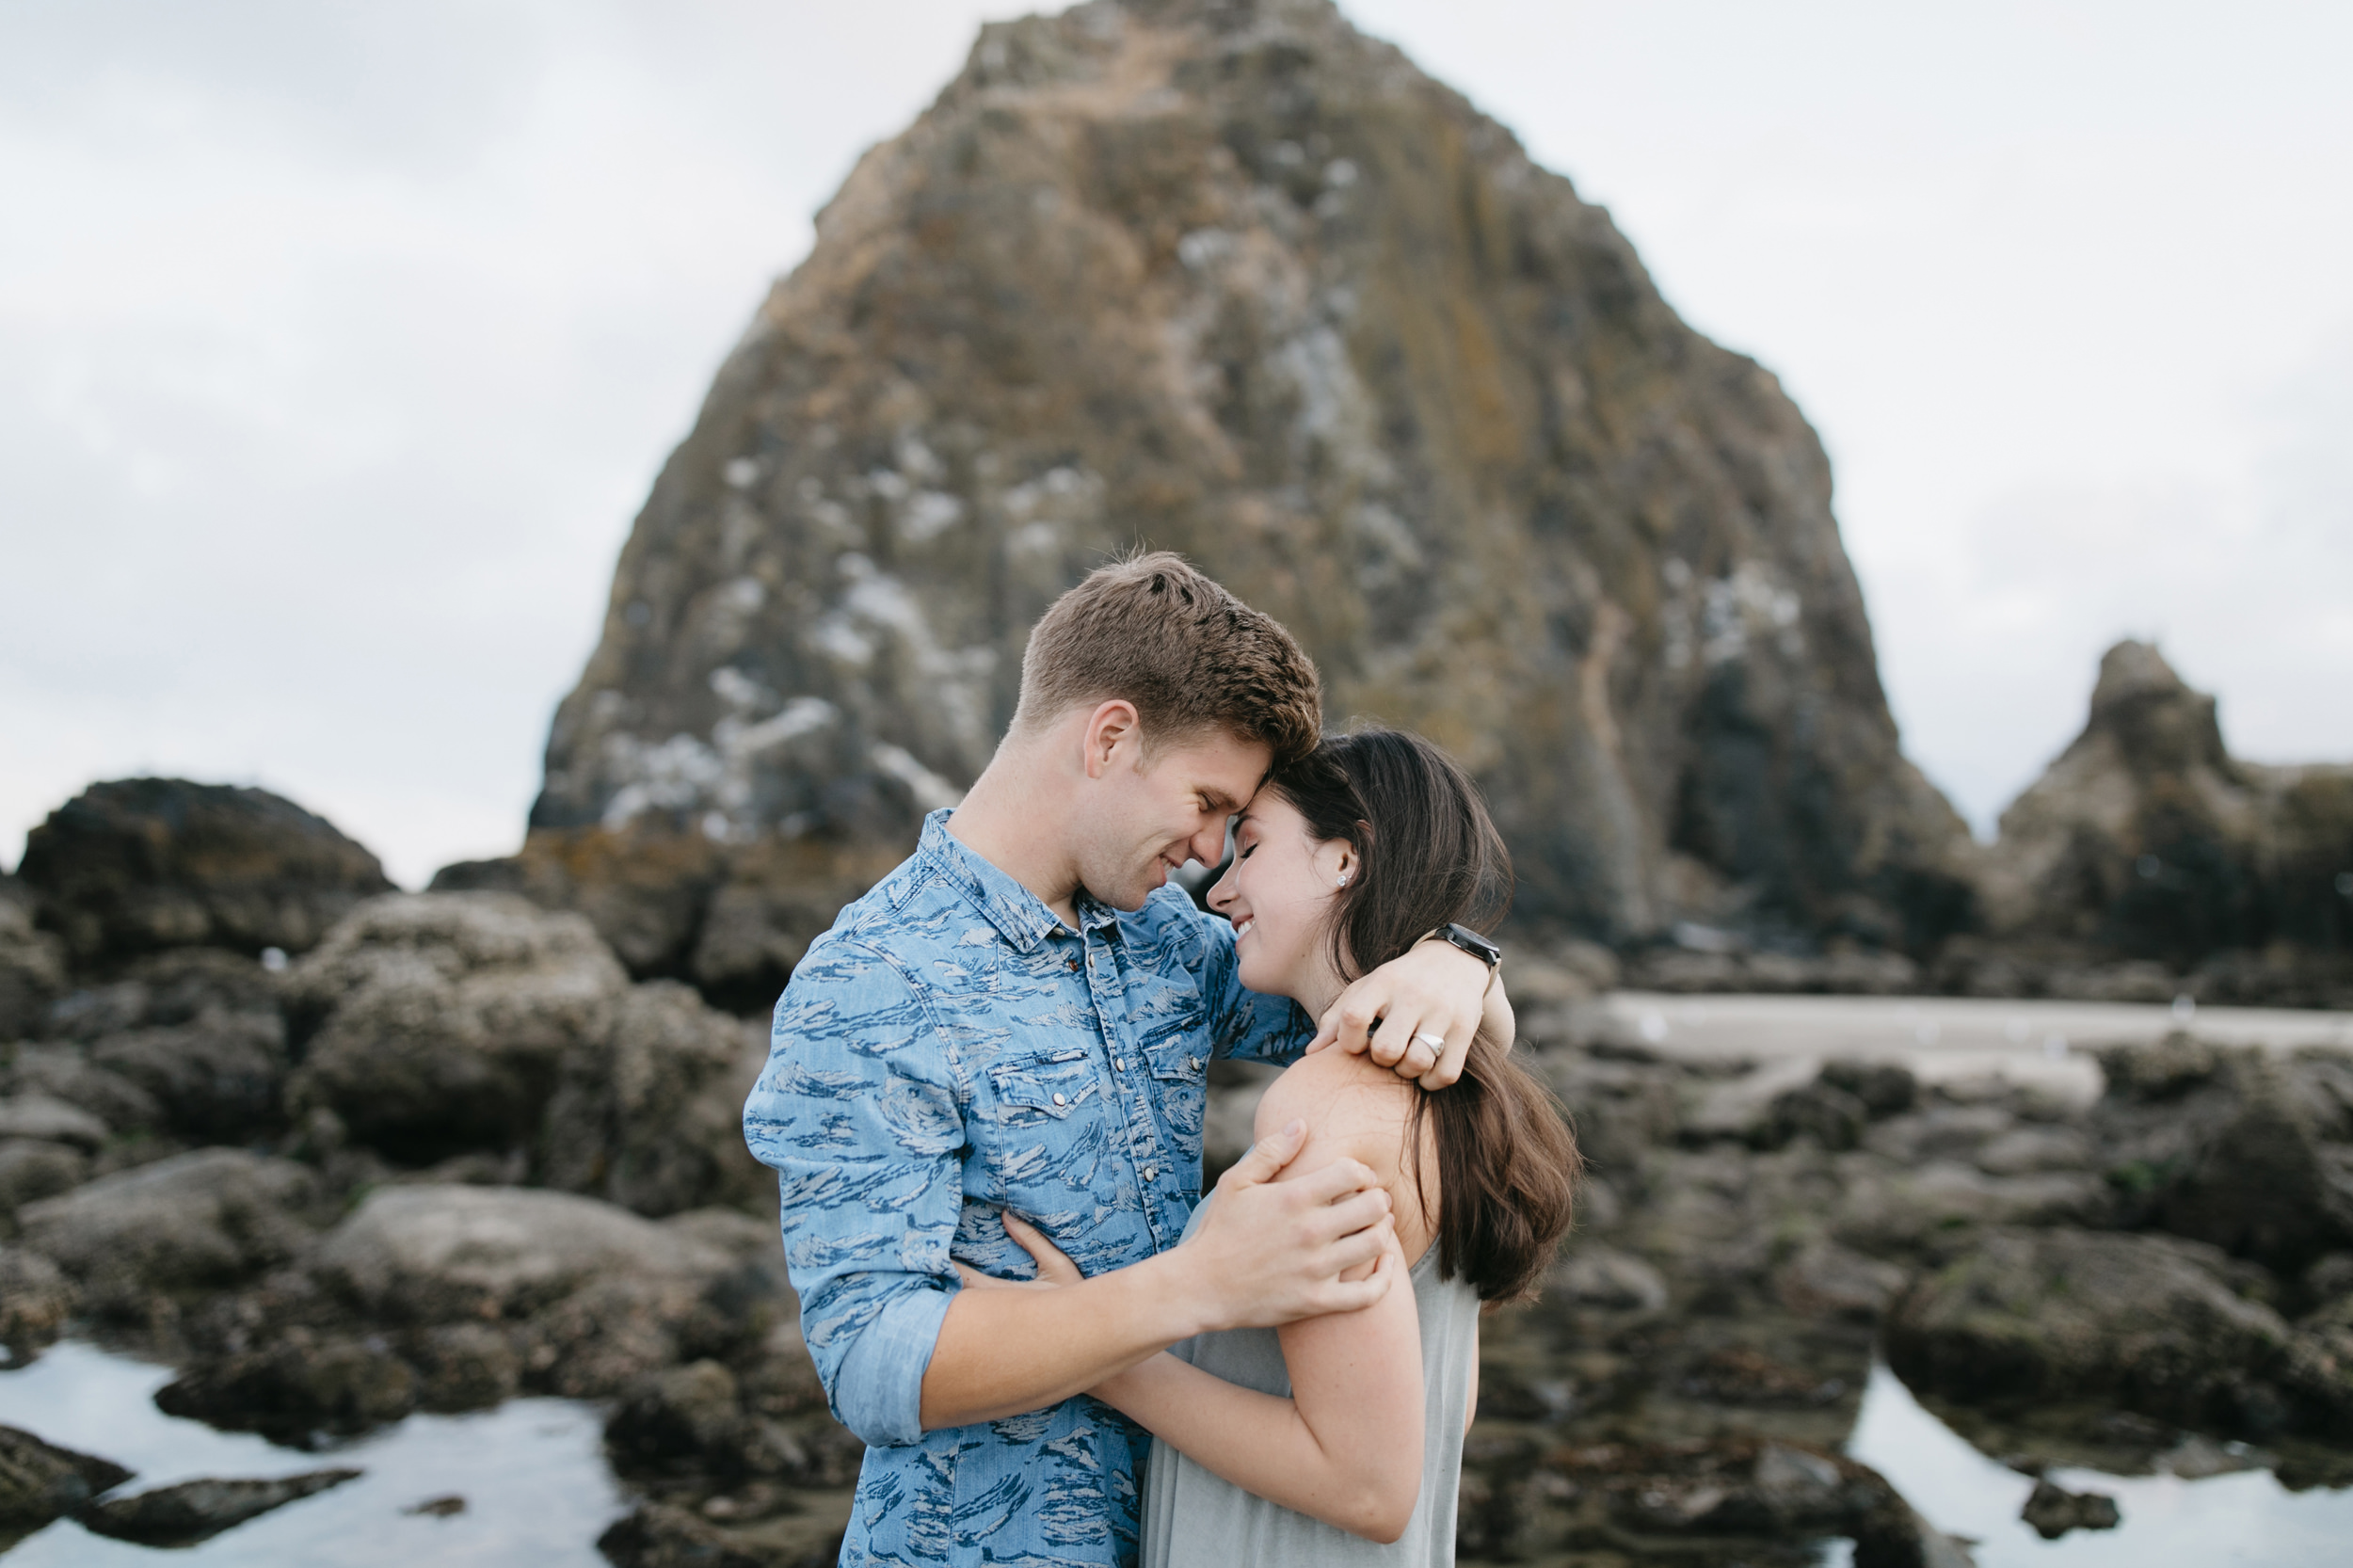 Cannon-Beach-Adventure-Engagement-Photography-Oregon-Destination-Elopement-Photographer50.JPG